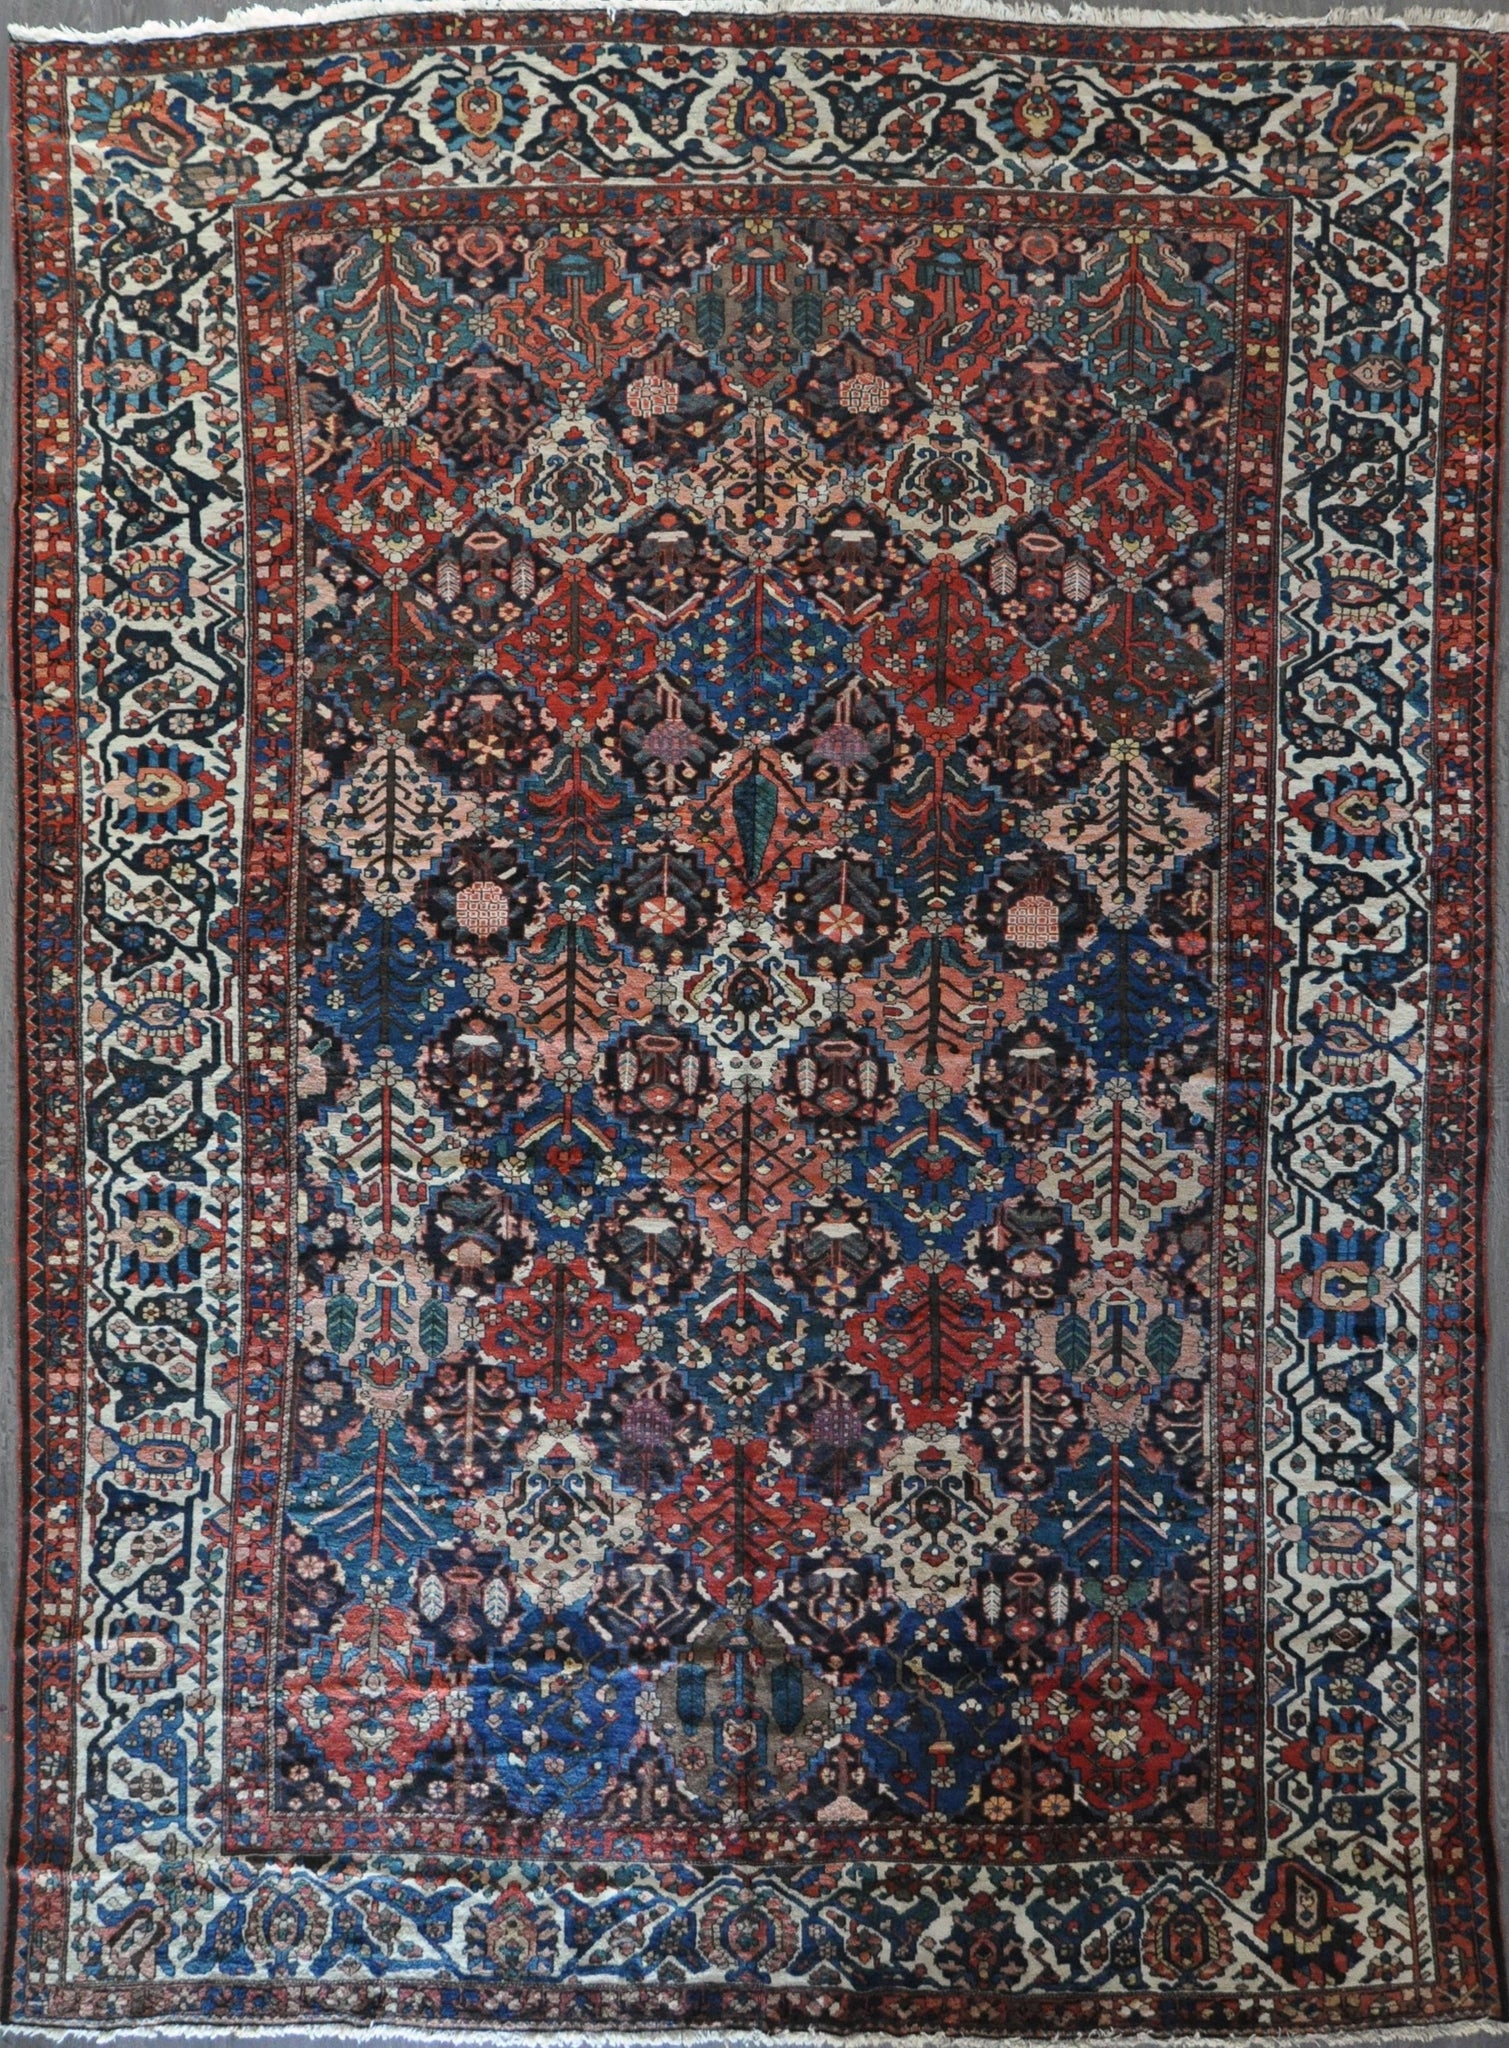 11.6x16.0 antique persian bakhtiari #89195